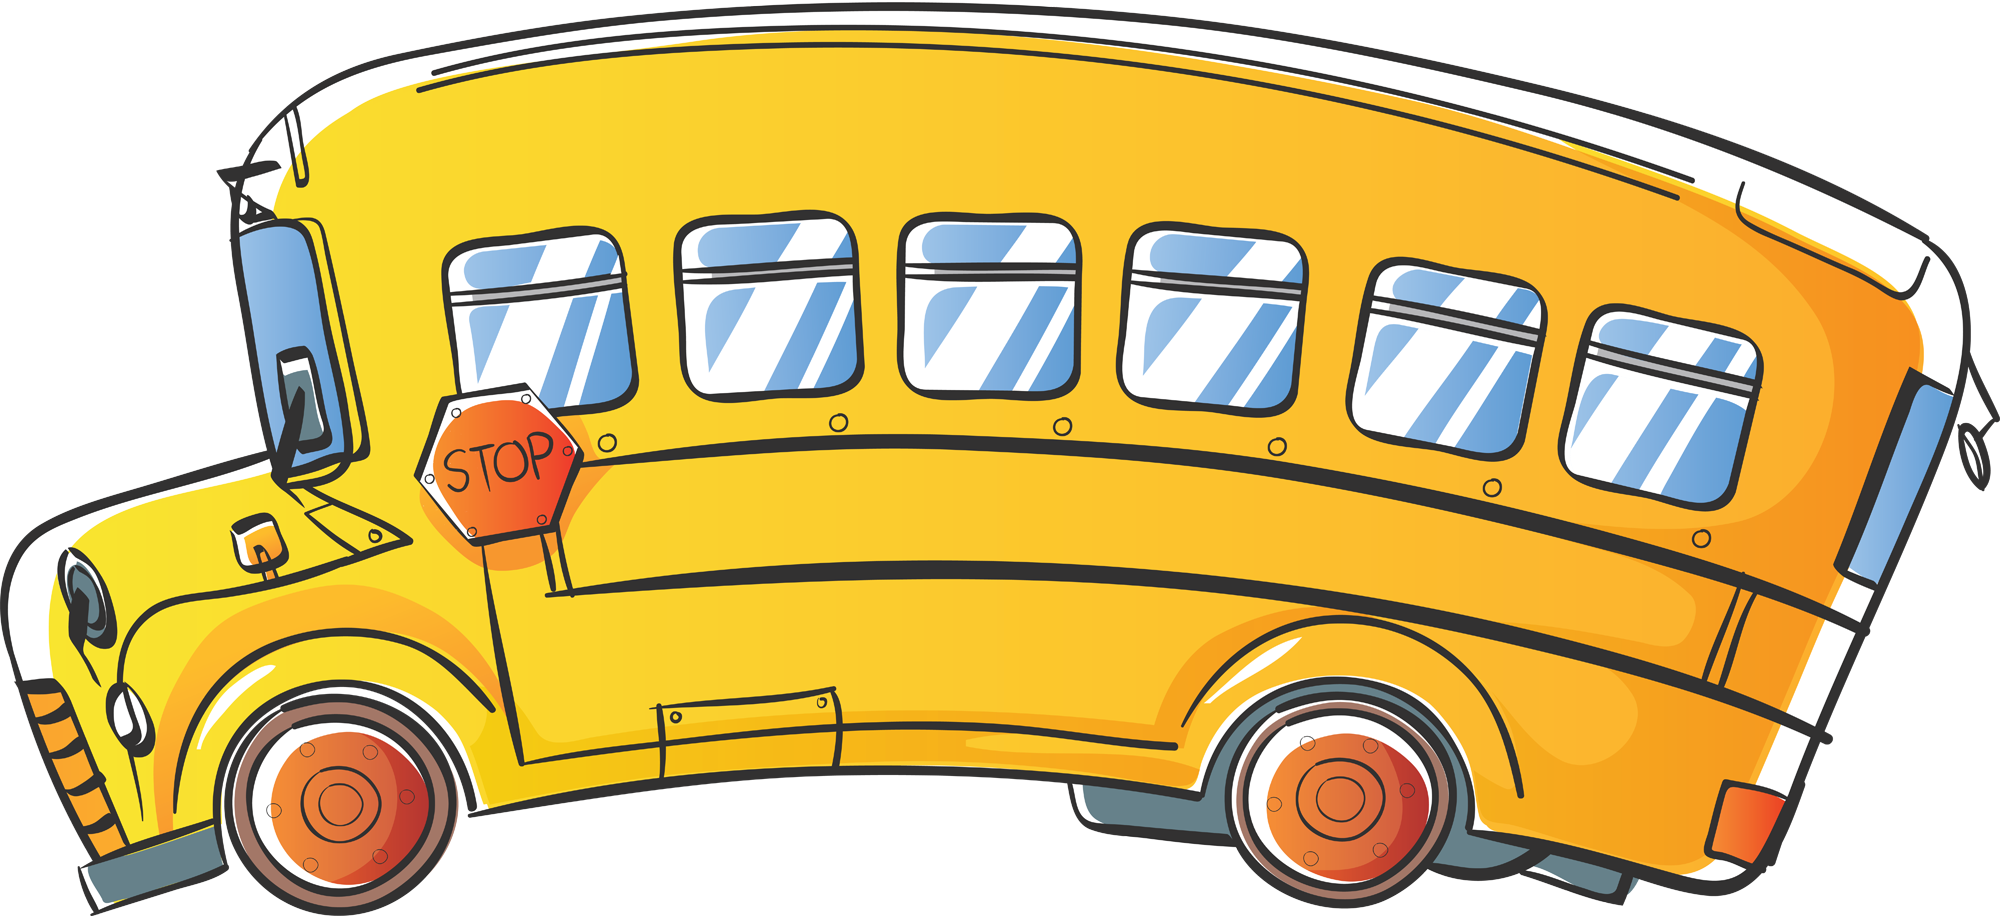 School bus safety clipart clipart freeuse library 18fresh School Bus Clipart Free - Clip arts & coloring pages clipart freeuse library